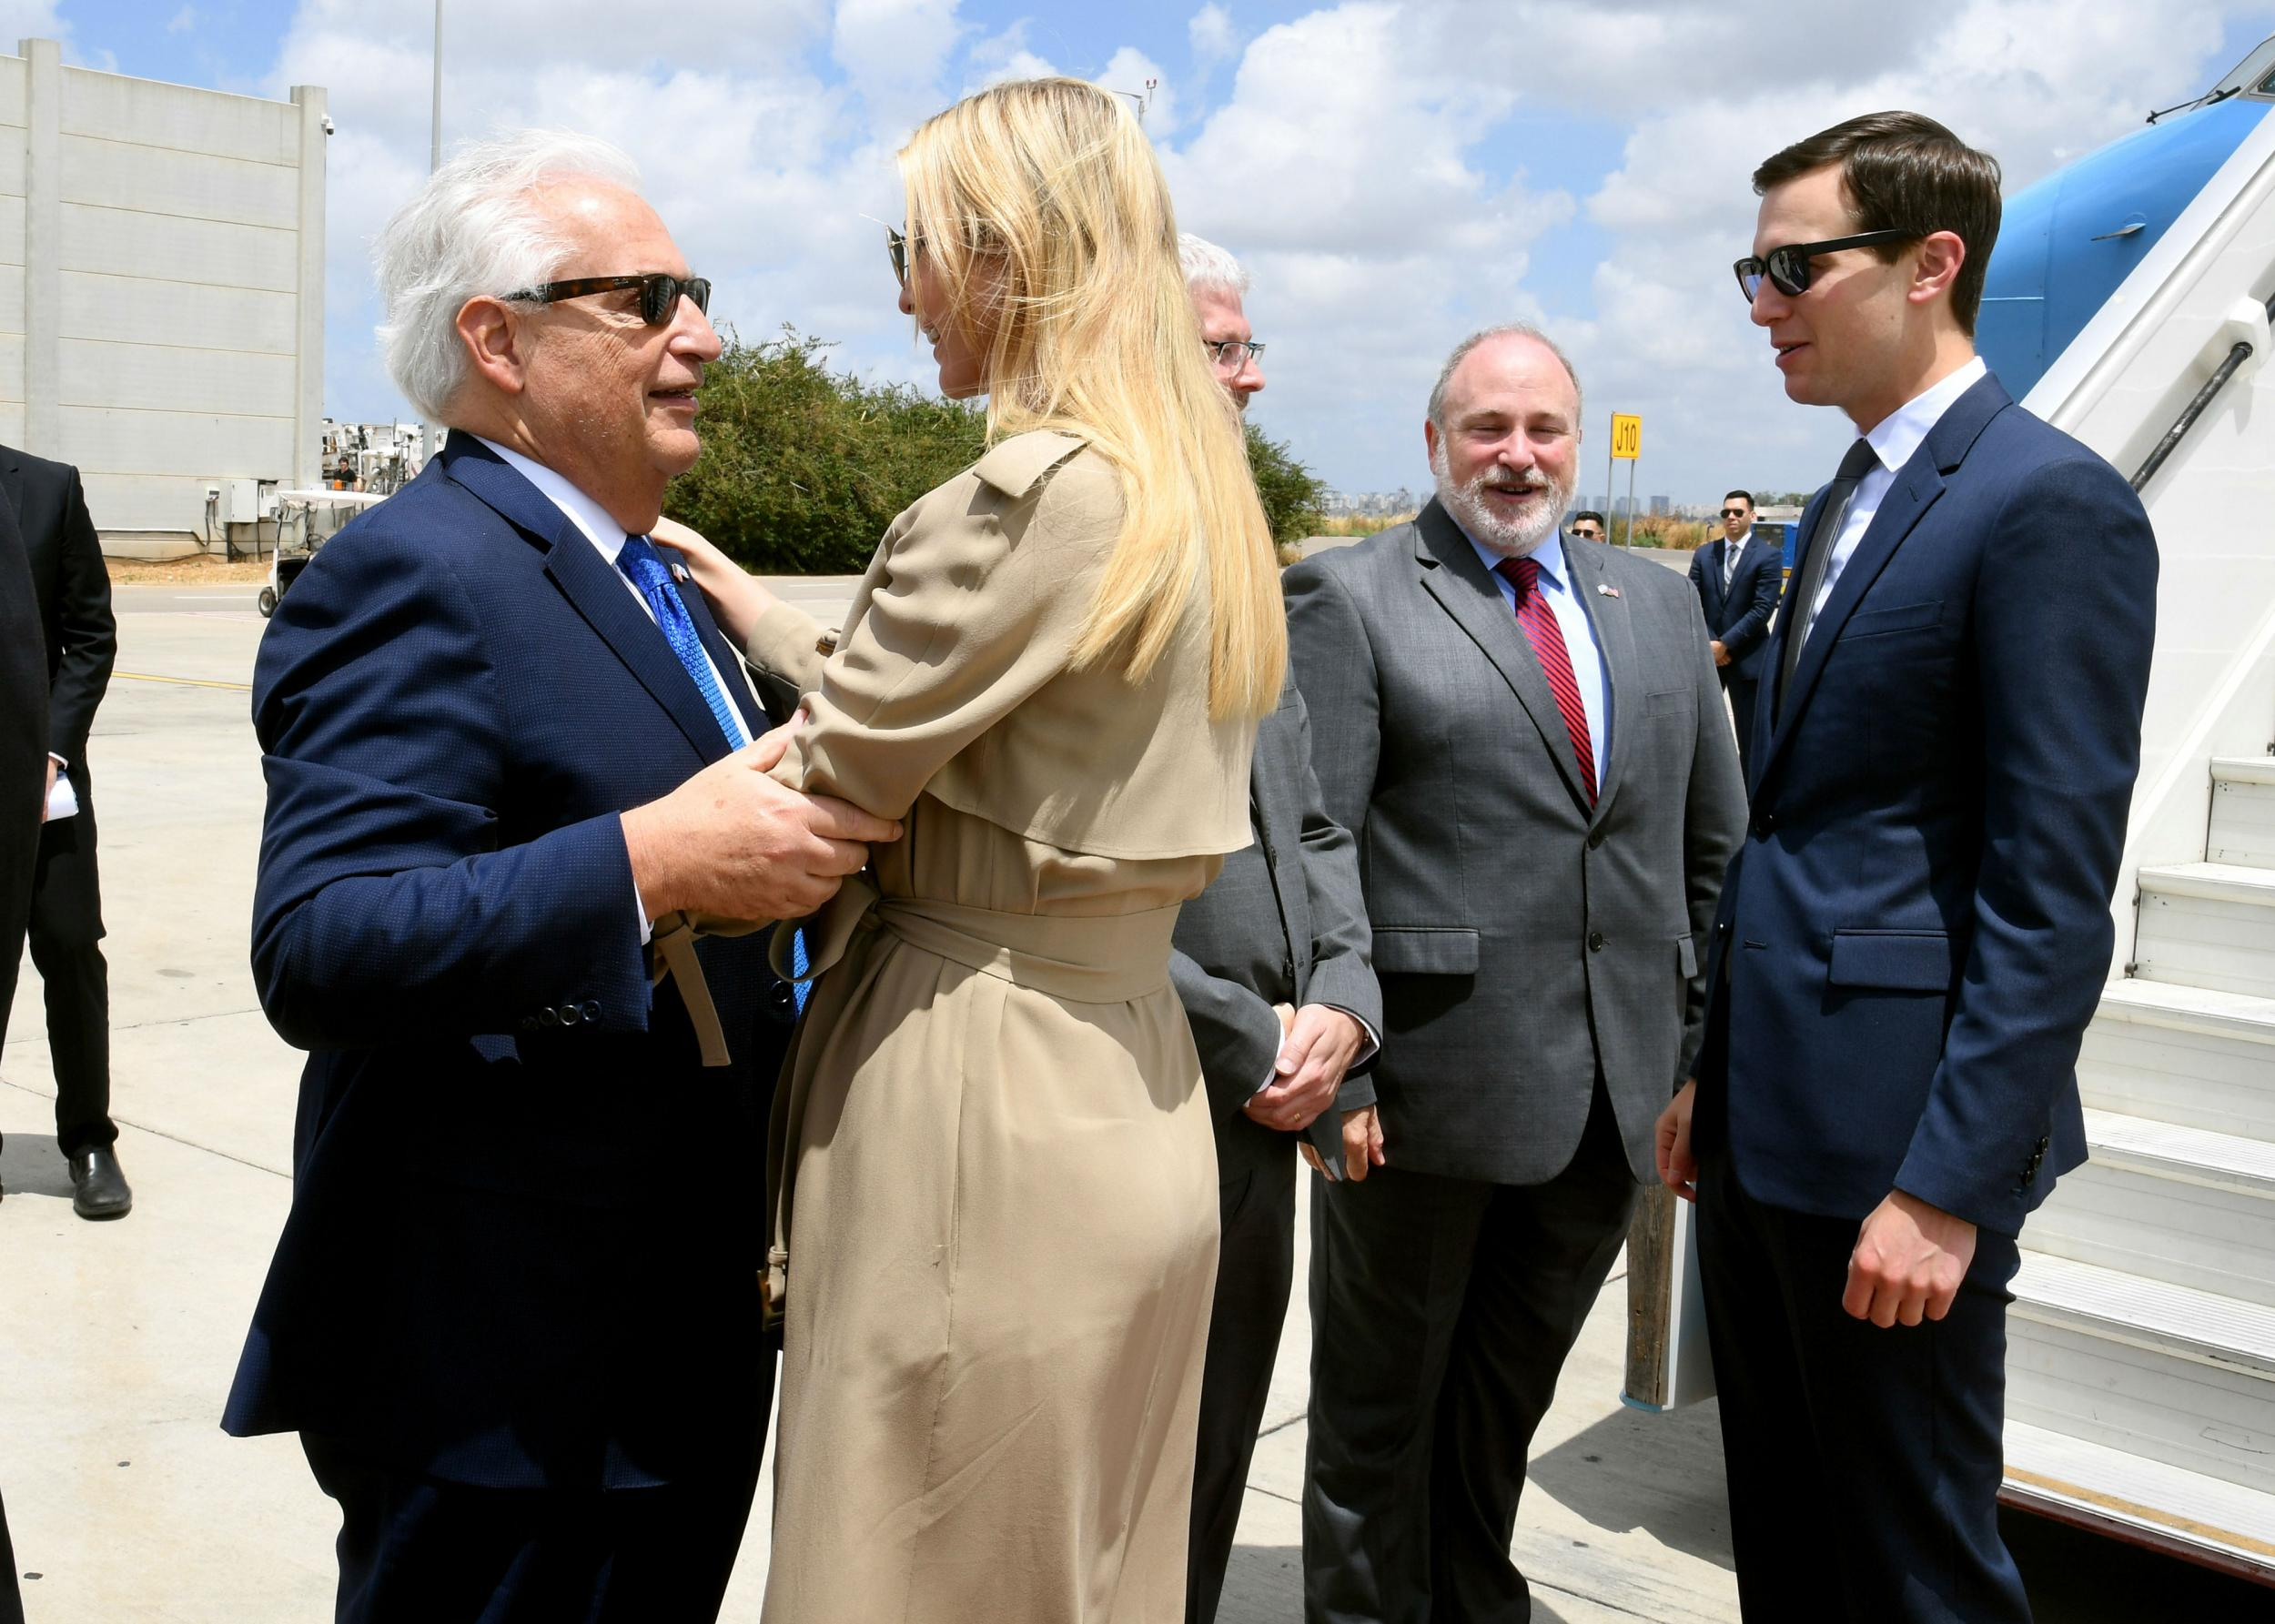 Ivanka Trump arrives in Israel for controversial opening of US embassy in Jerusalem as Palestinians plan protests